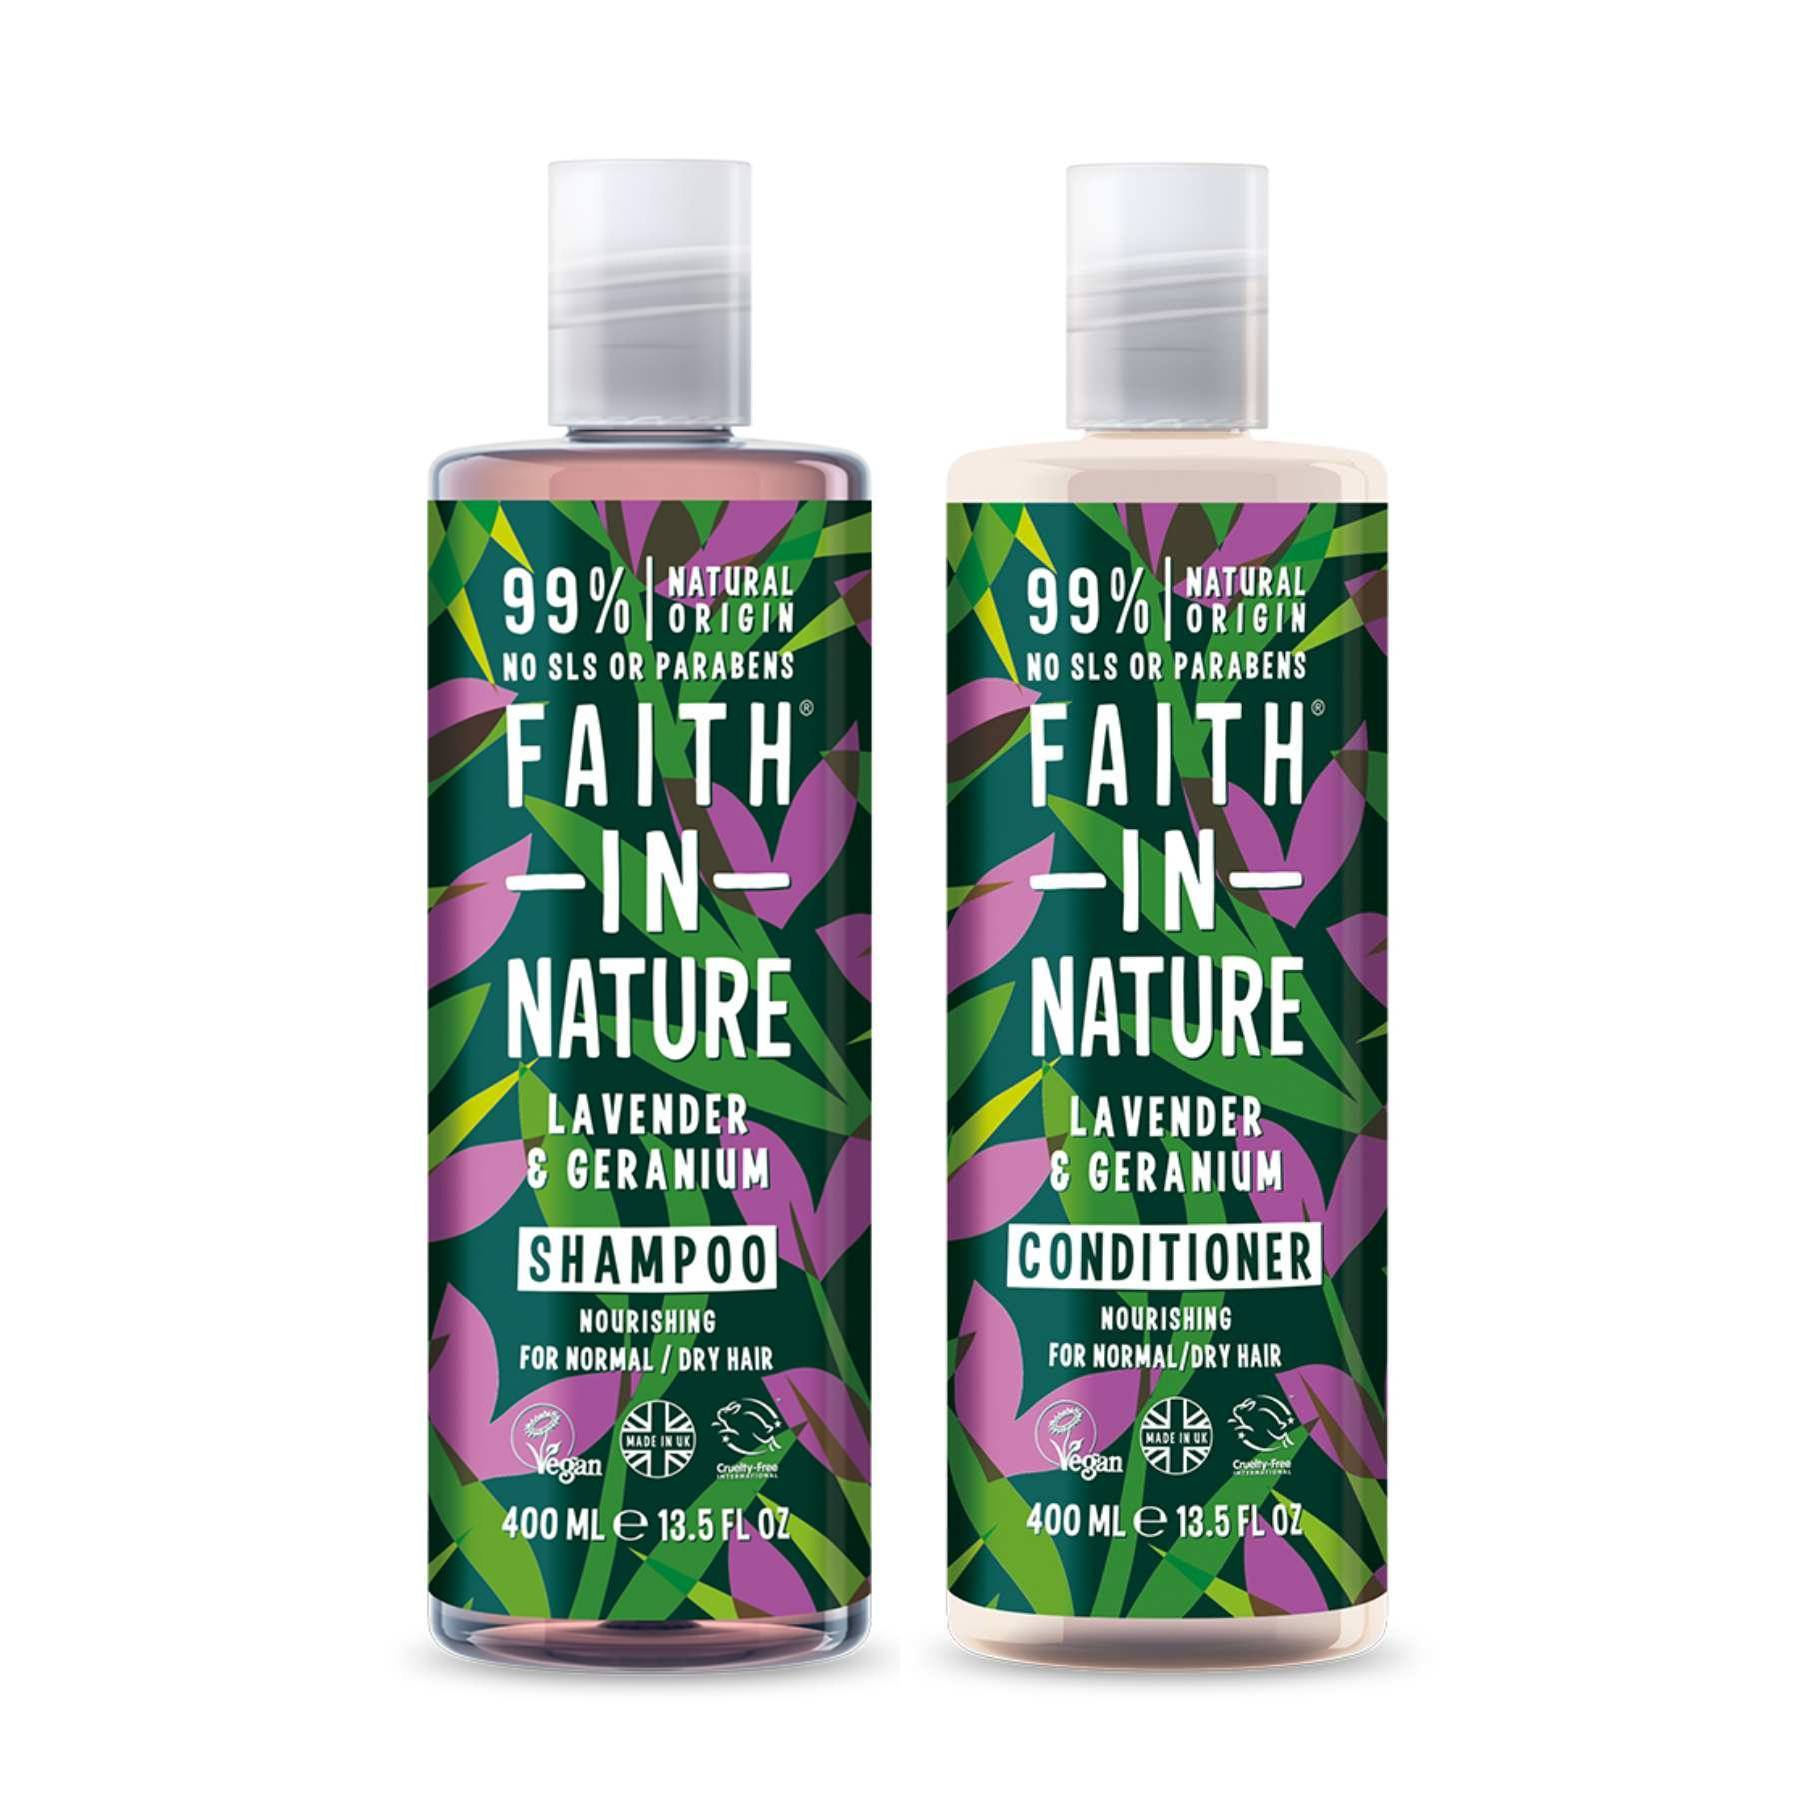 This is an image of Faith In Nature Anti-Frizz Lavender & Geranium Shampoo & Conditioner Combo on www.sublimelife.in